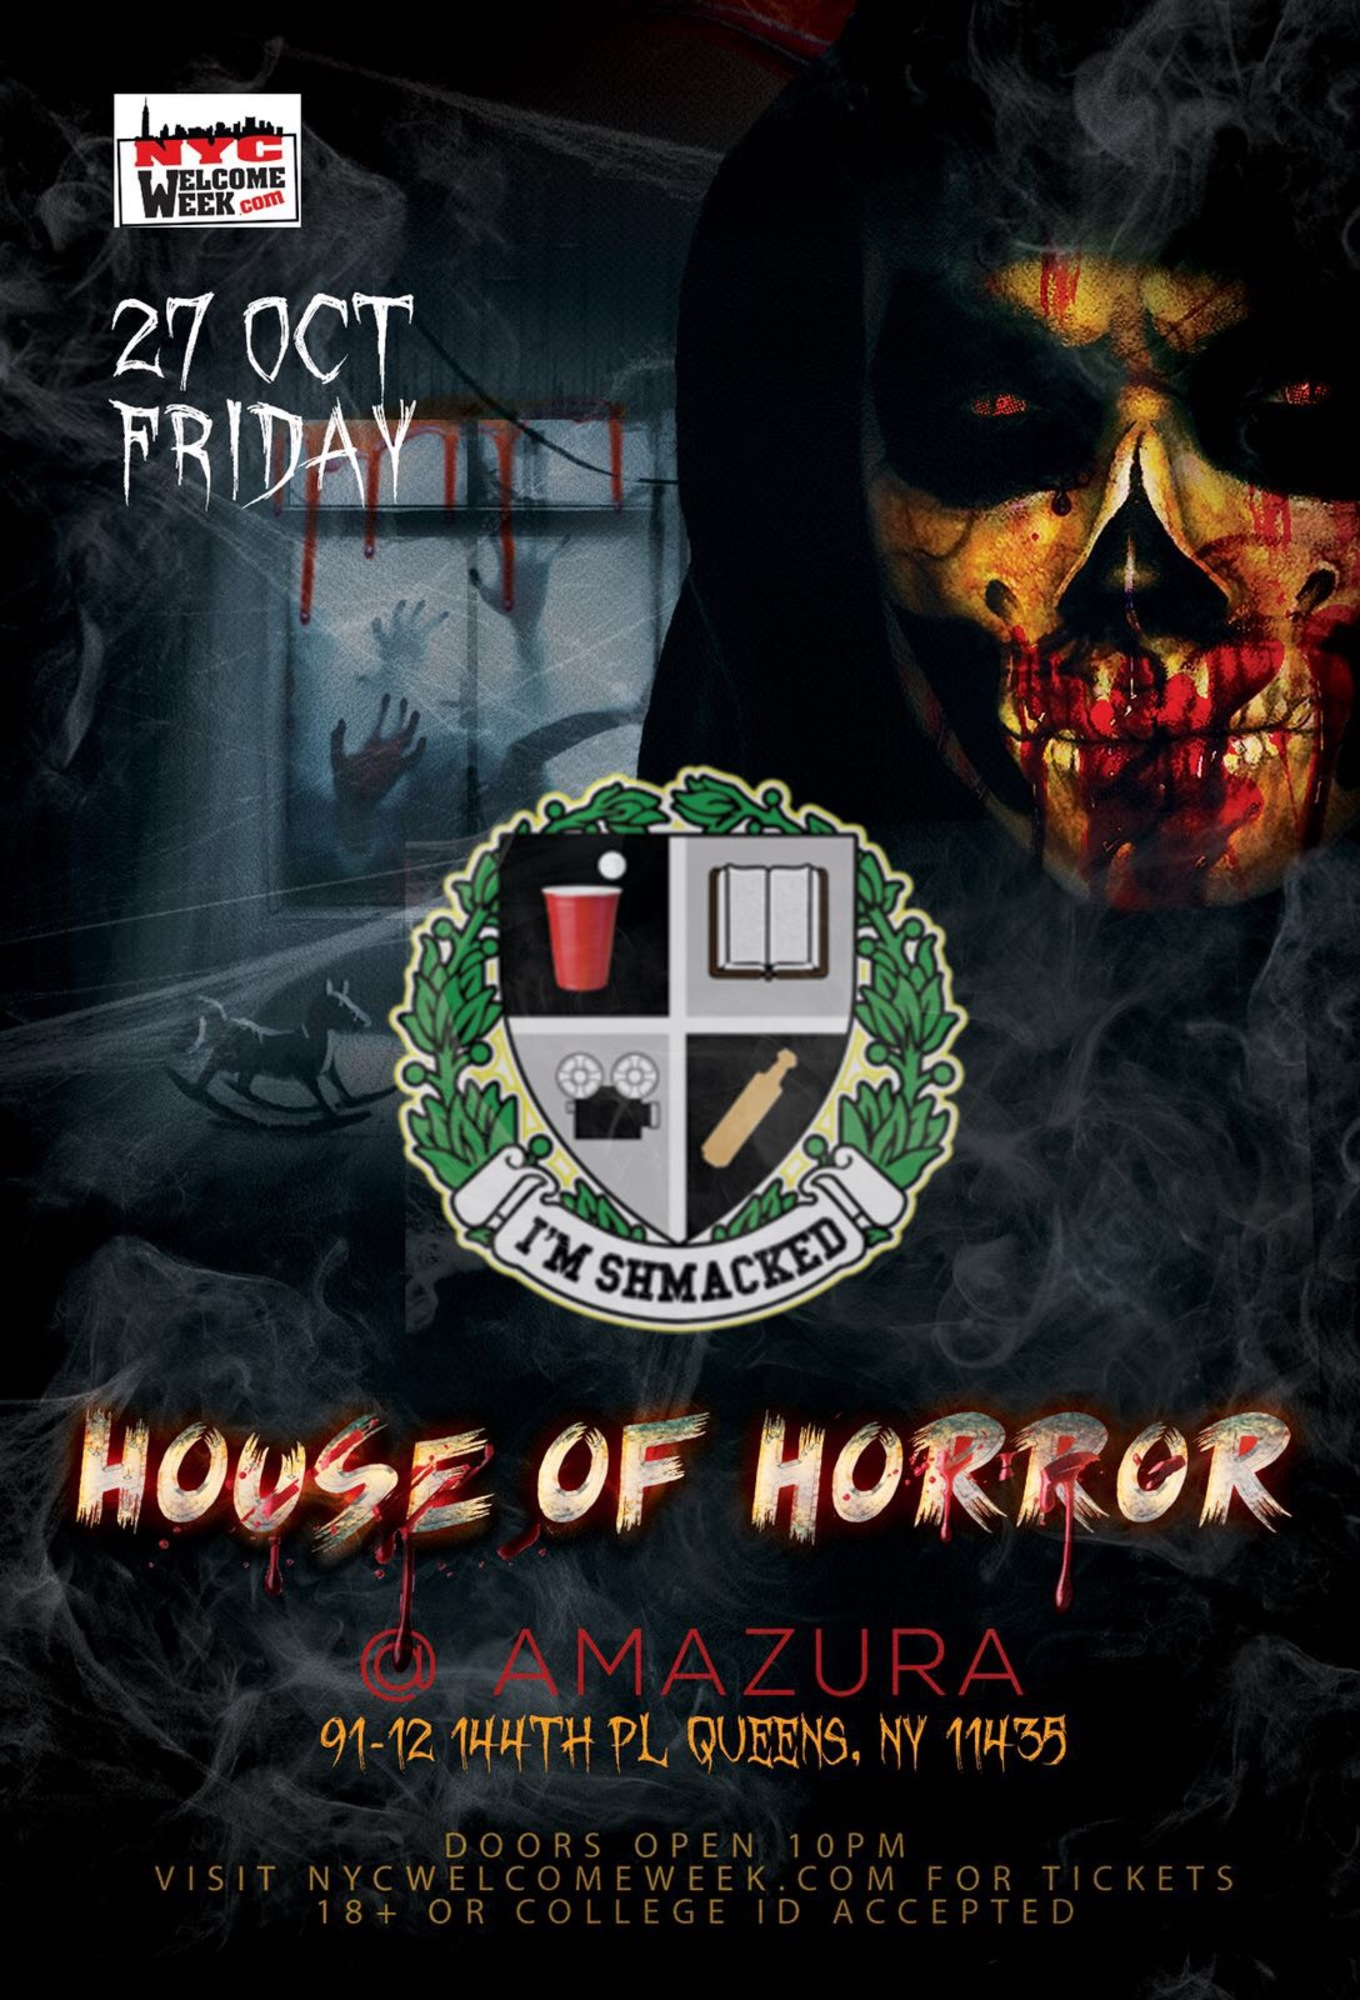 Iu0027M SHMACKED Fall Tour NYC Edition: HOUSE OF HORROR